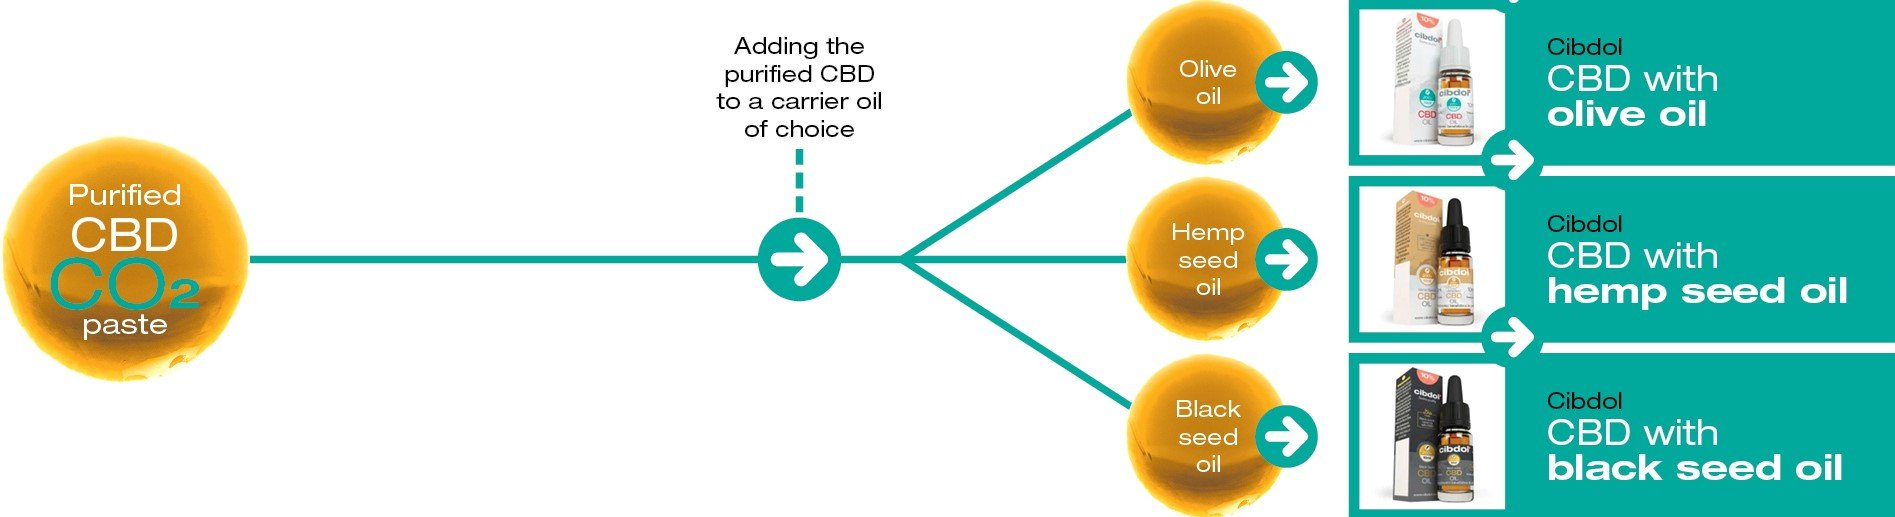 Cibdol offers a wide selection of alternative carrier oils